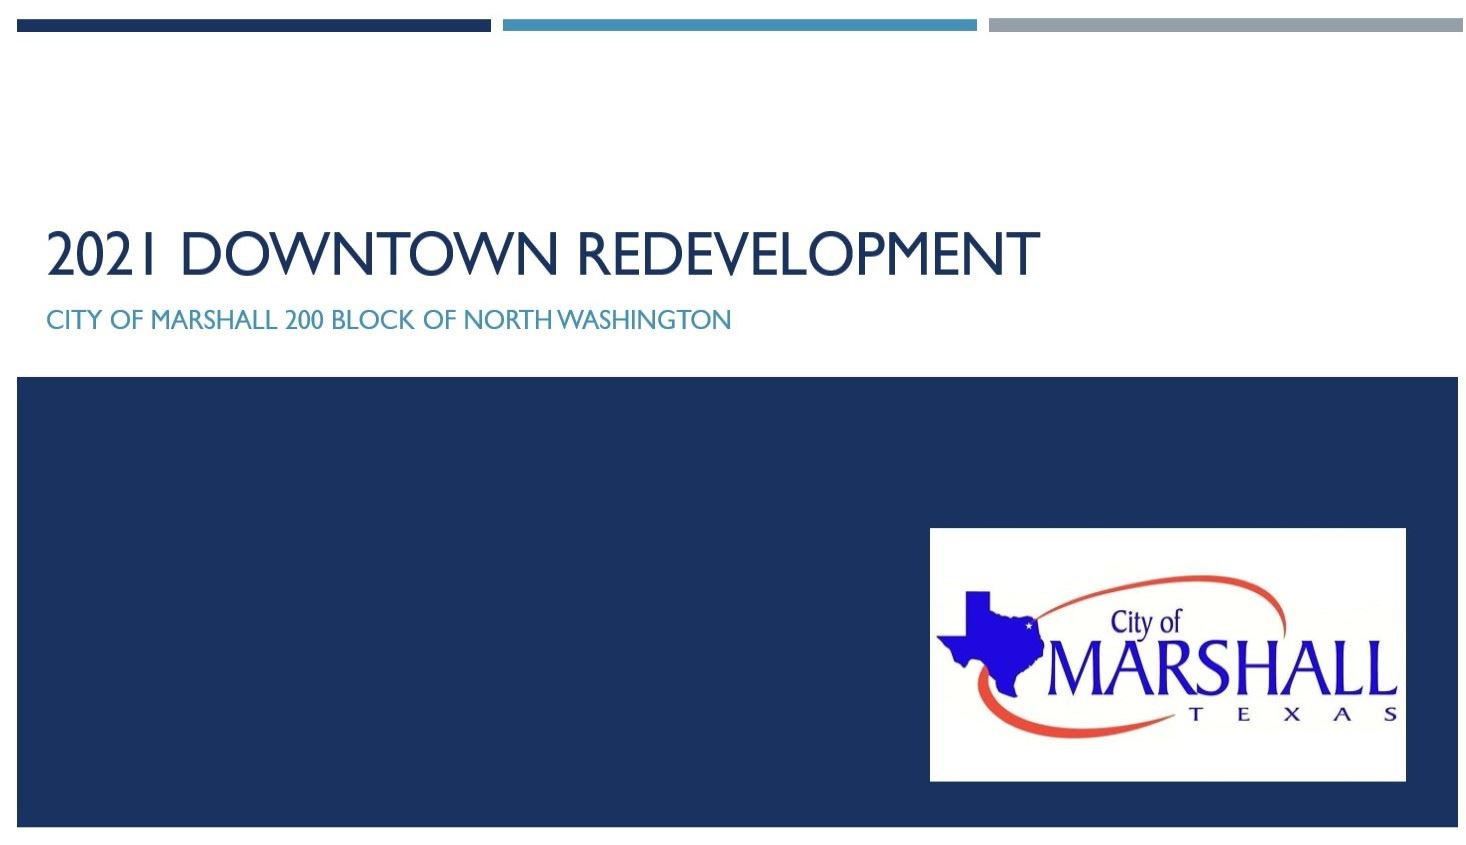 Logo for the City of Marshall Texas and banner for downtown revitalization.